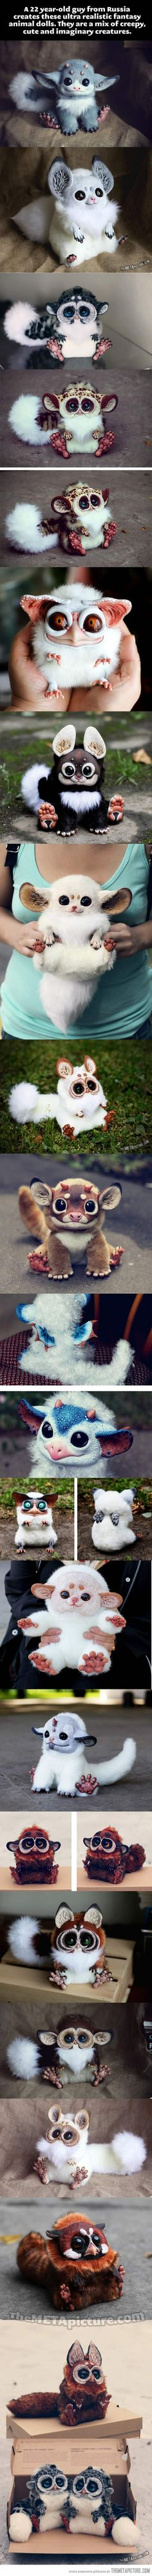 Ultra-realistic fantasy animal dolls… The Inari Fox has been showing up on Pinterest as real and has fooled a lot of people!